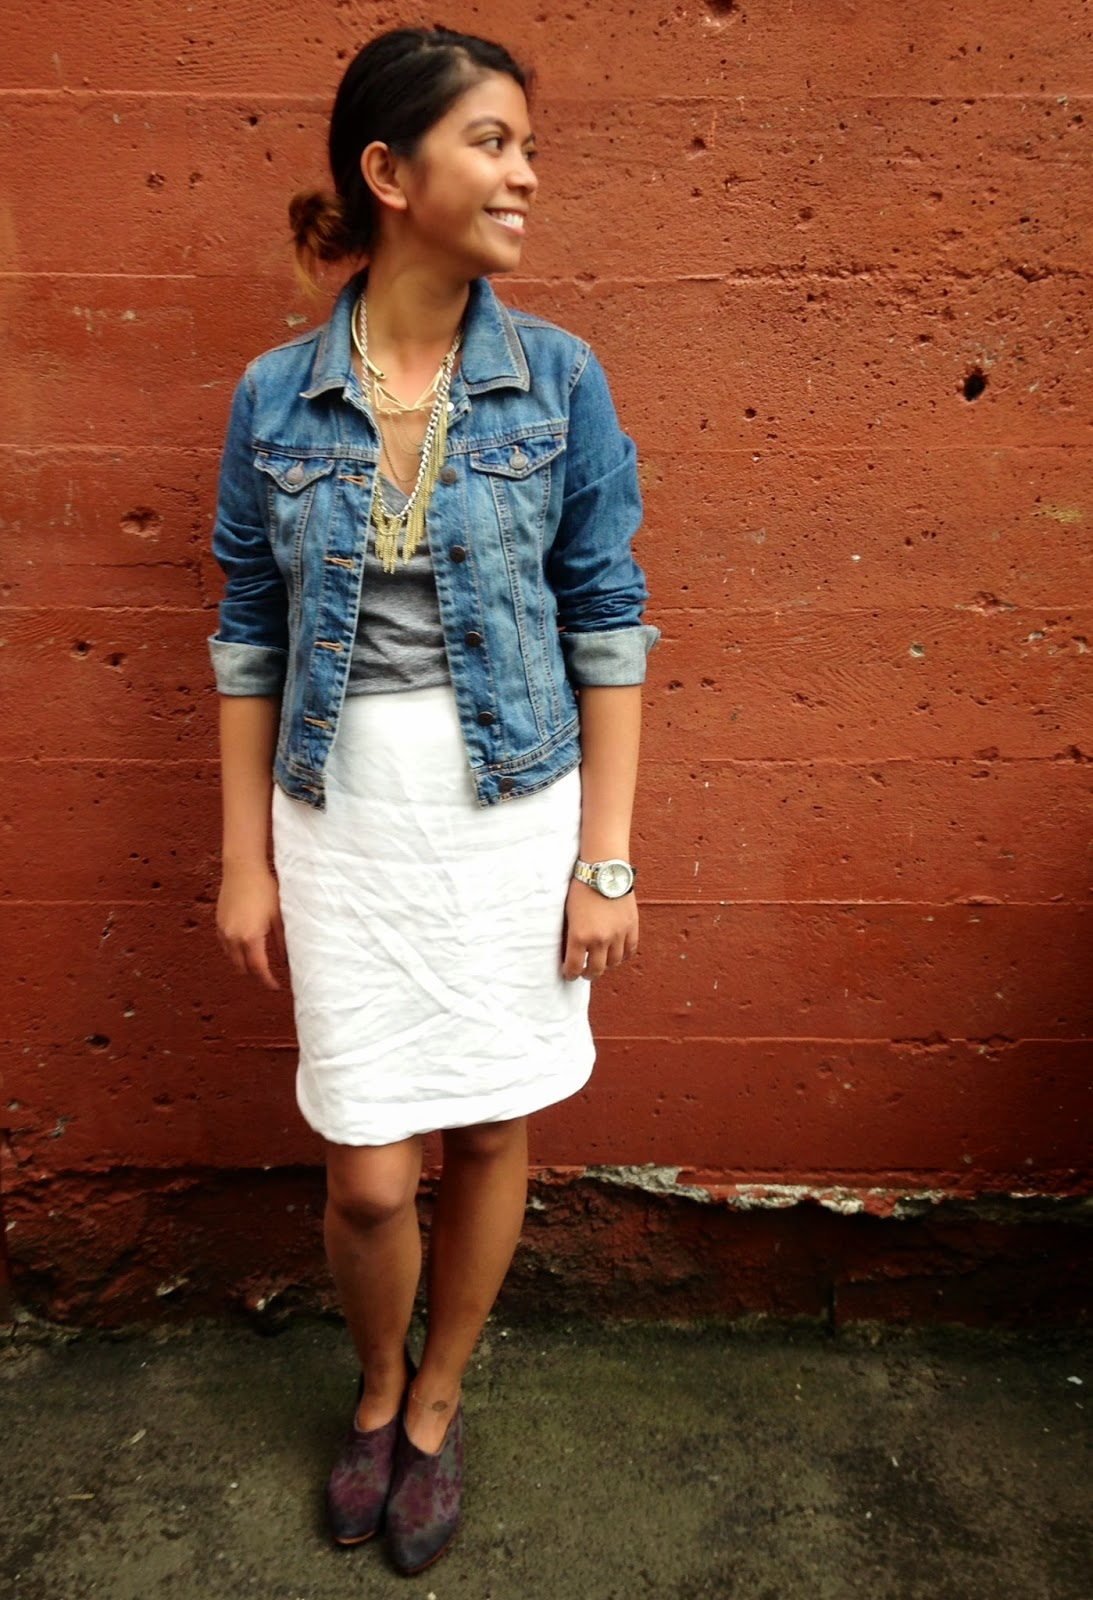 portland blogger, fashion blogger, outfit of the day, look of the day, white skirt, old navy, booties, thrifted